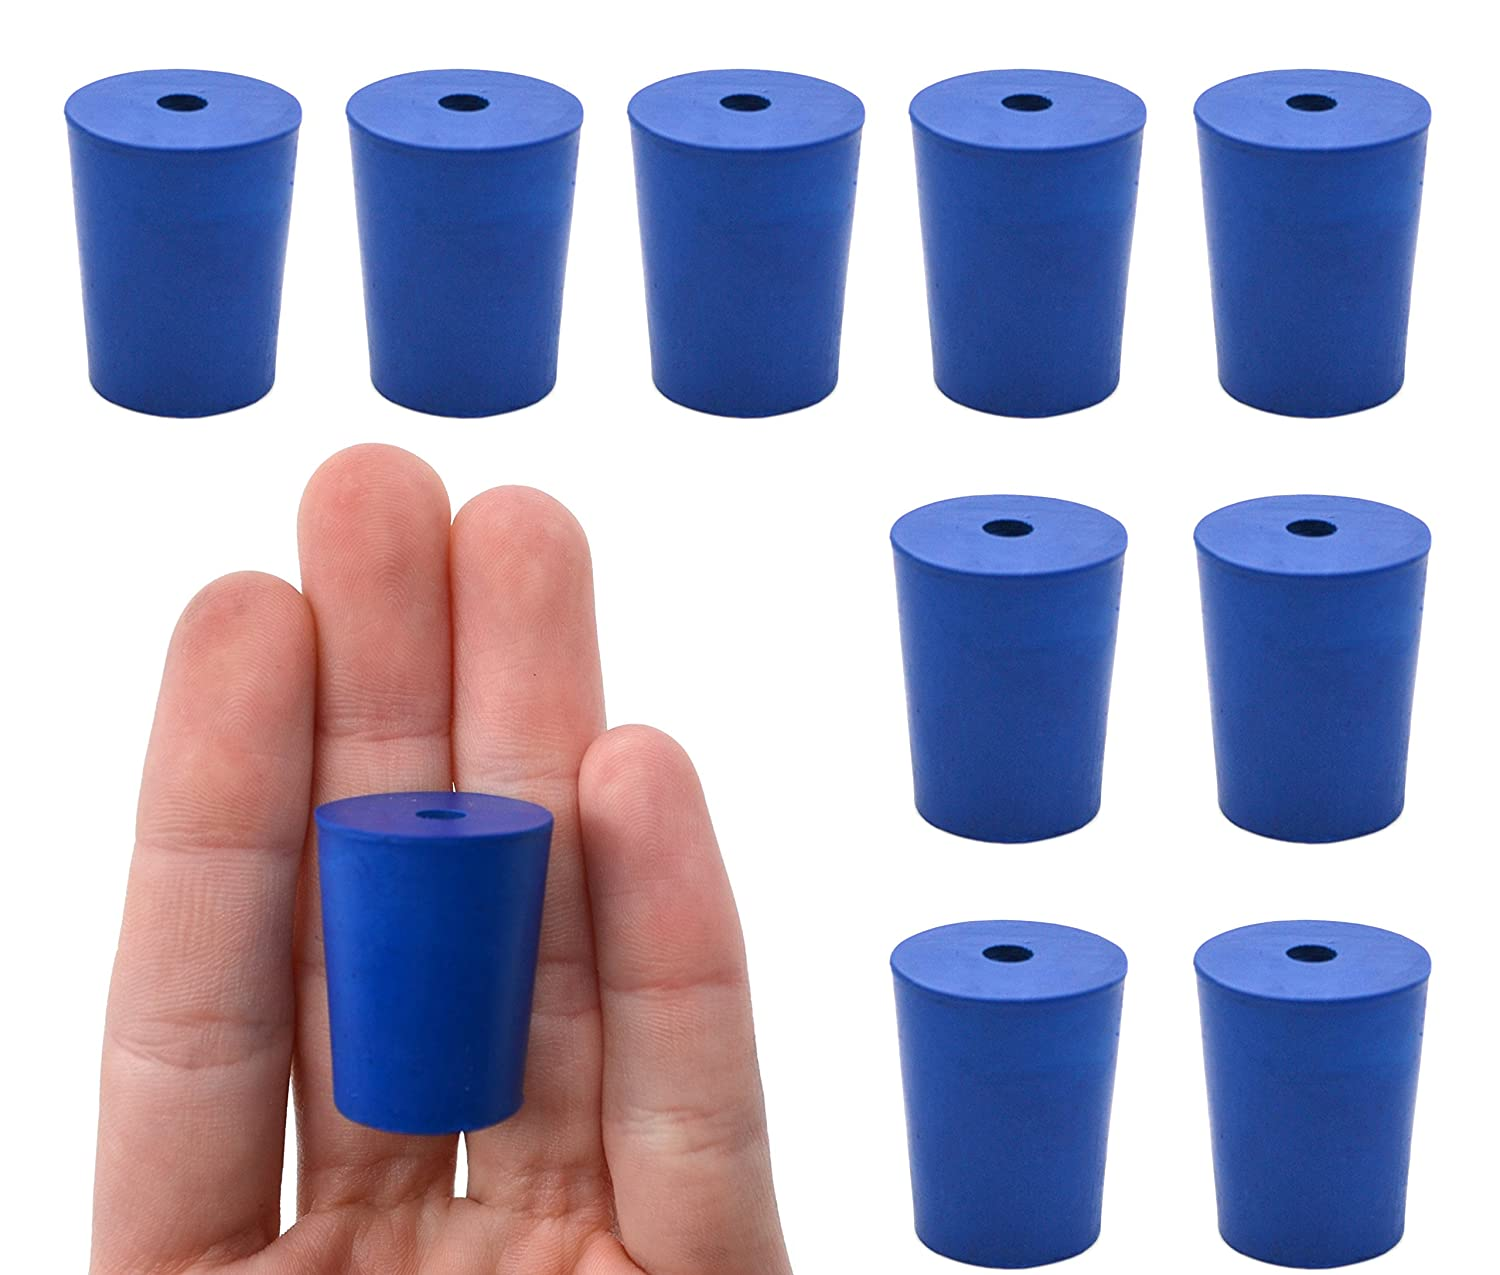 10PK Neoprene Stoppers 1 Hole New product Memphis Mall type - 20mm Bottom Blue 17mm Size: